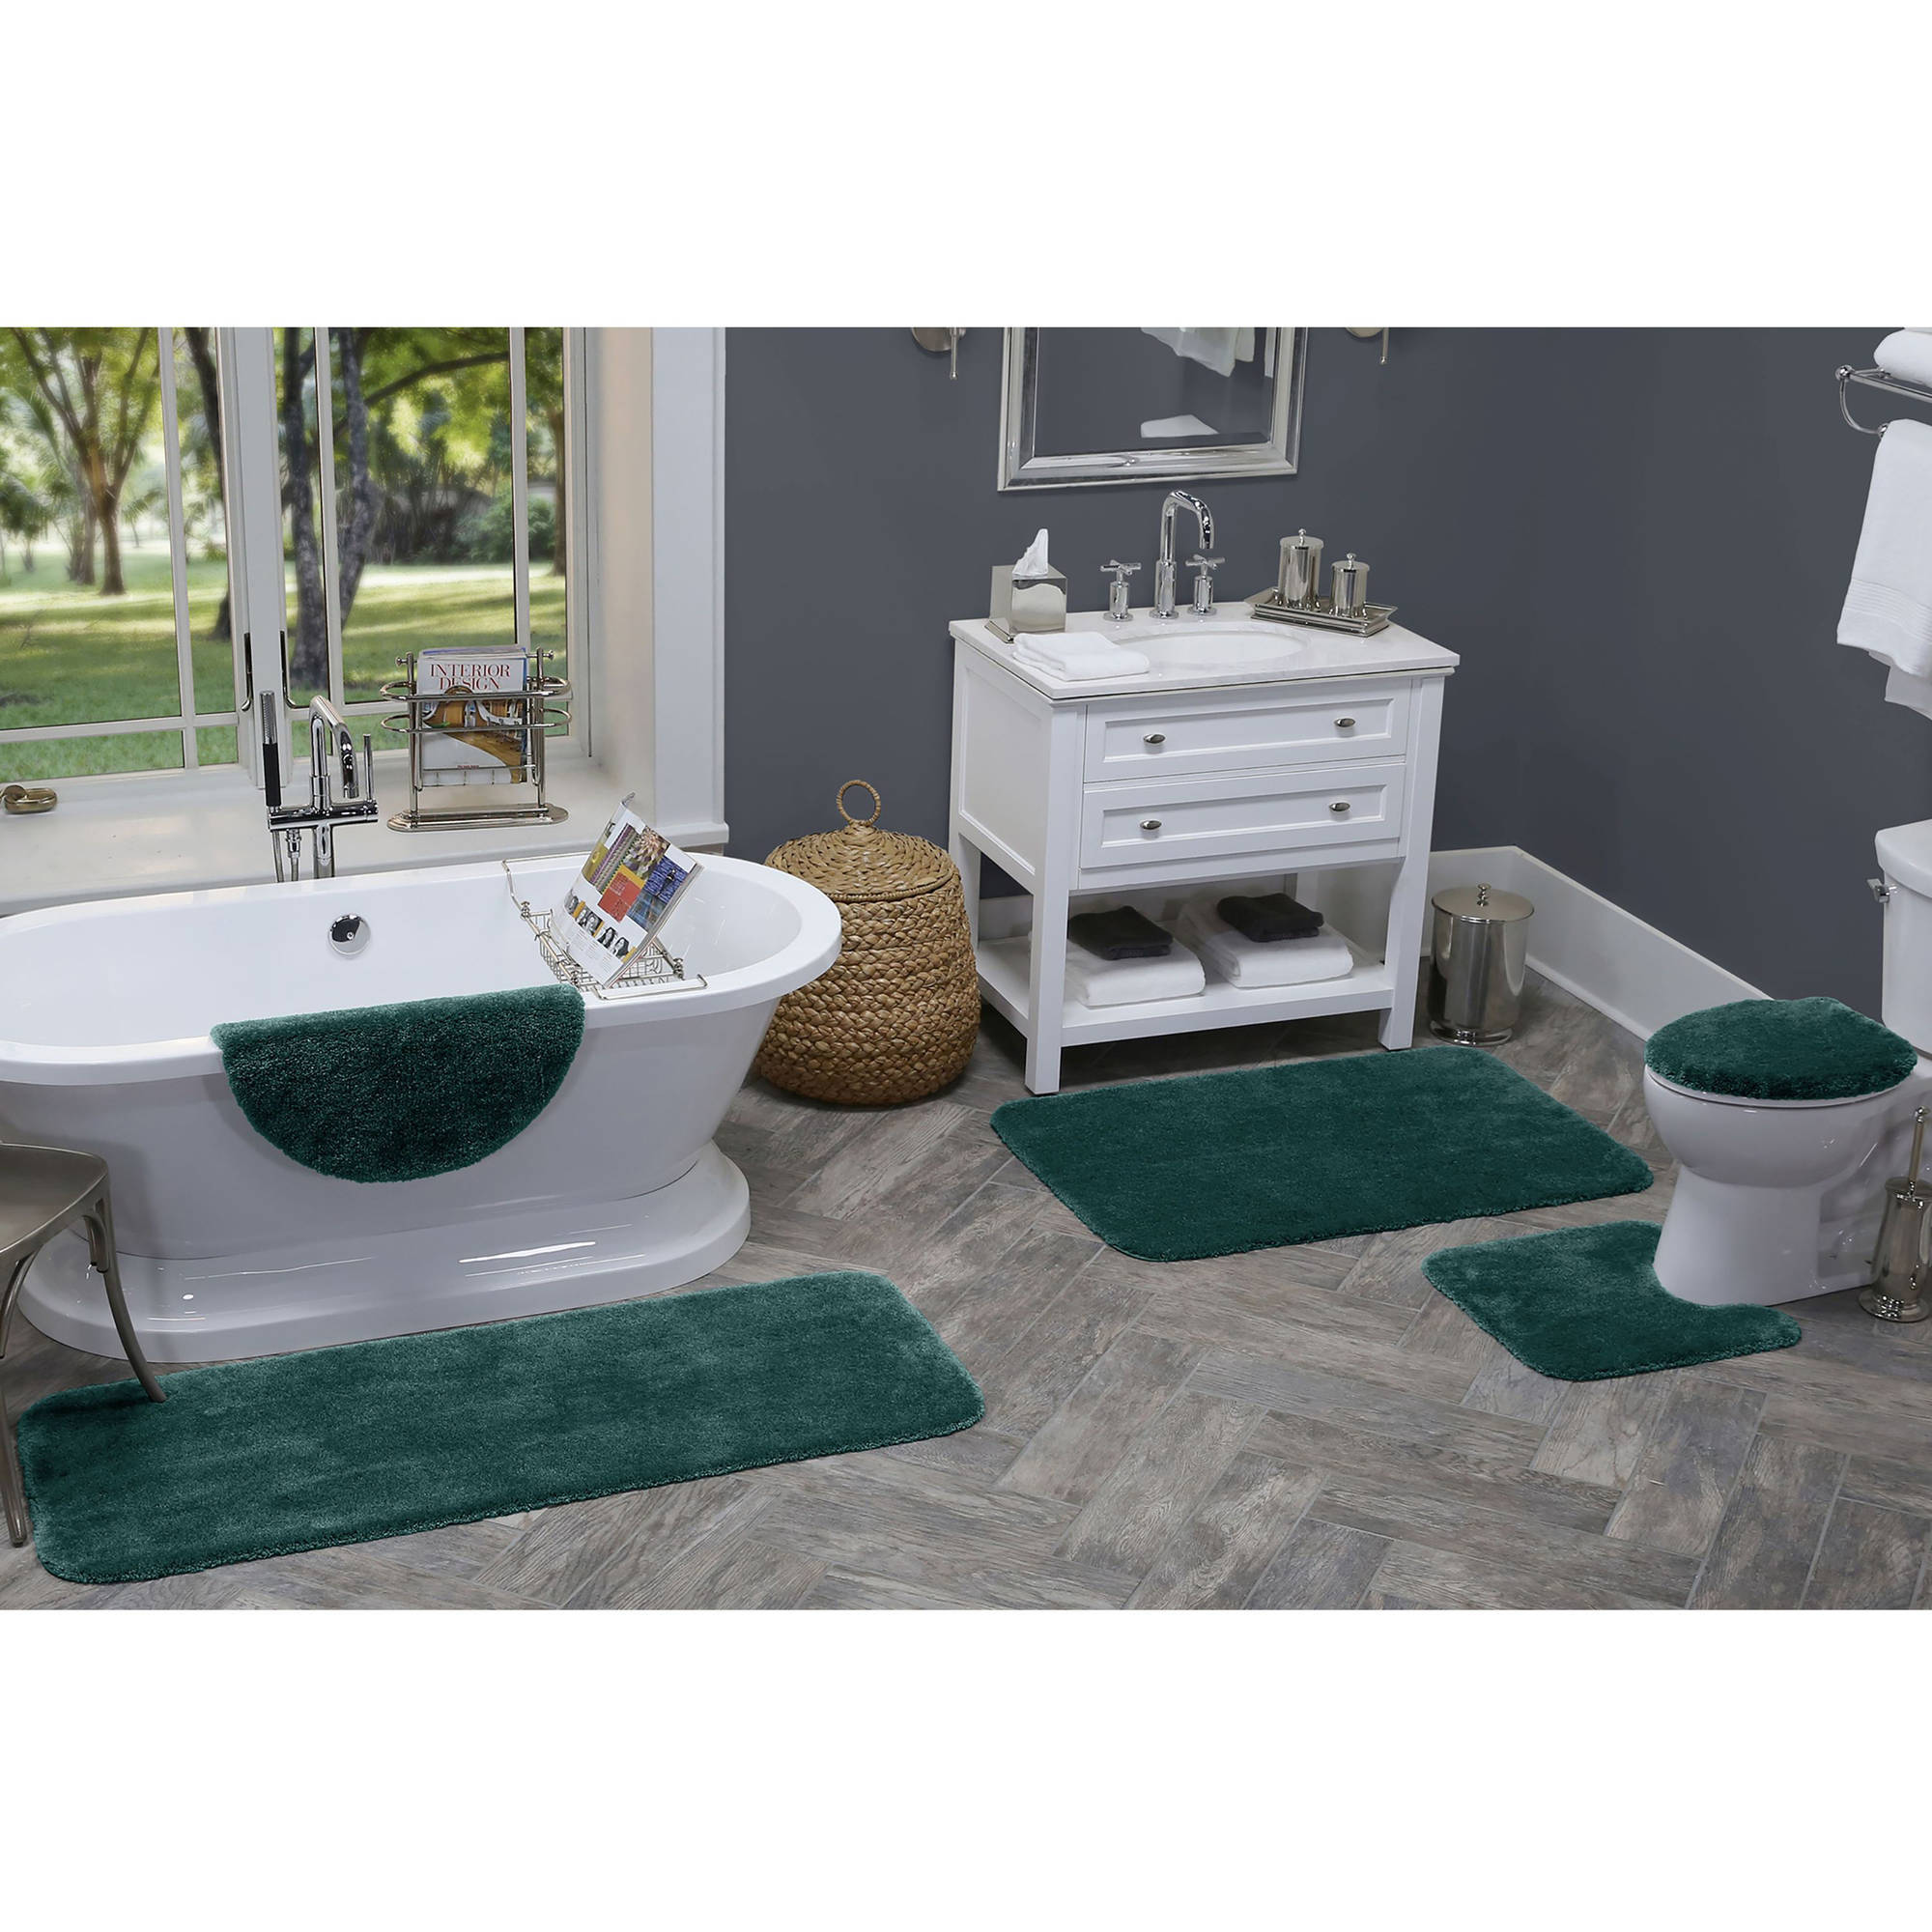 Better Homes and Gardens Extra Soft Bath Rug